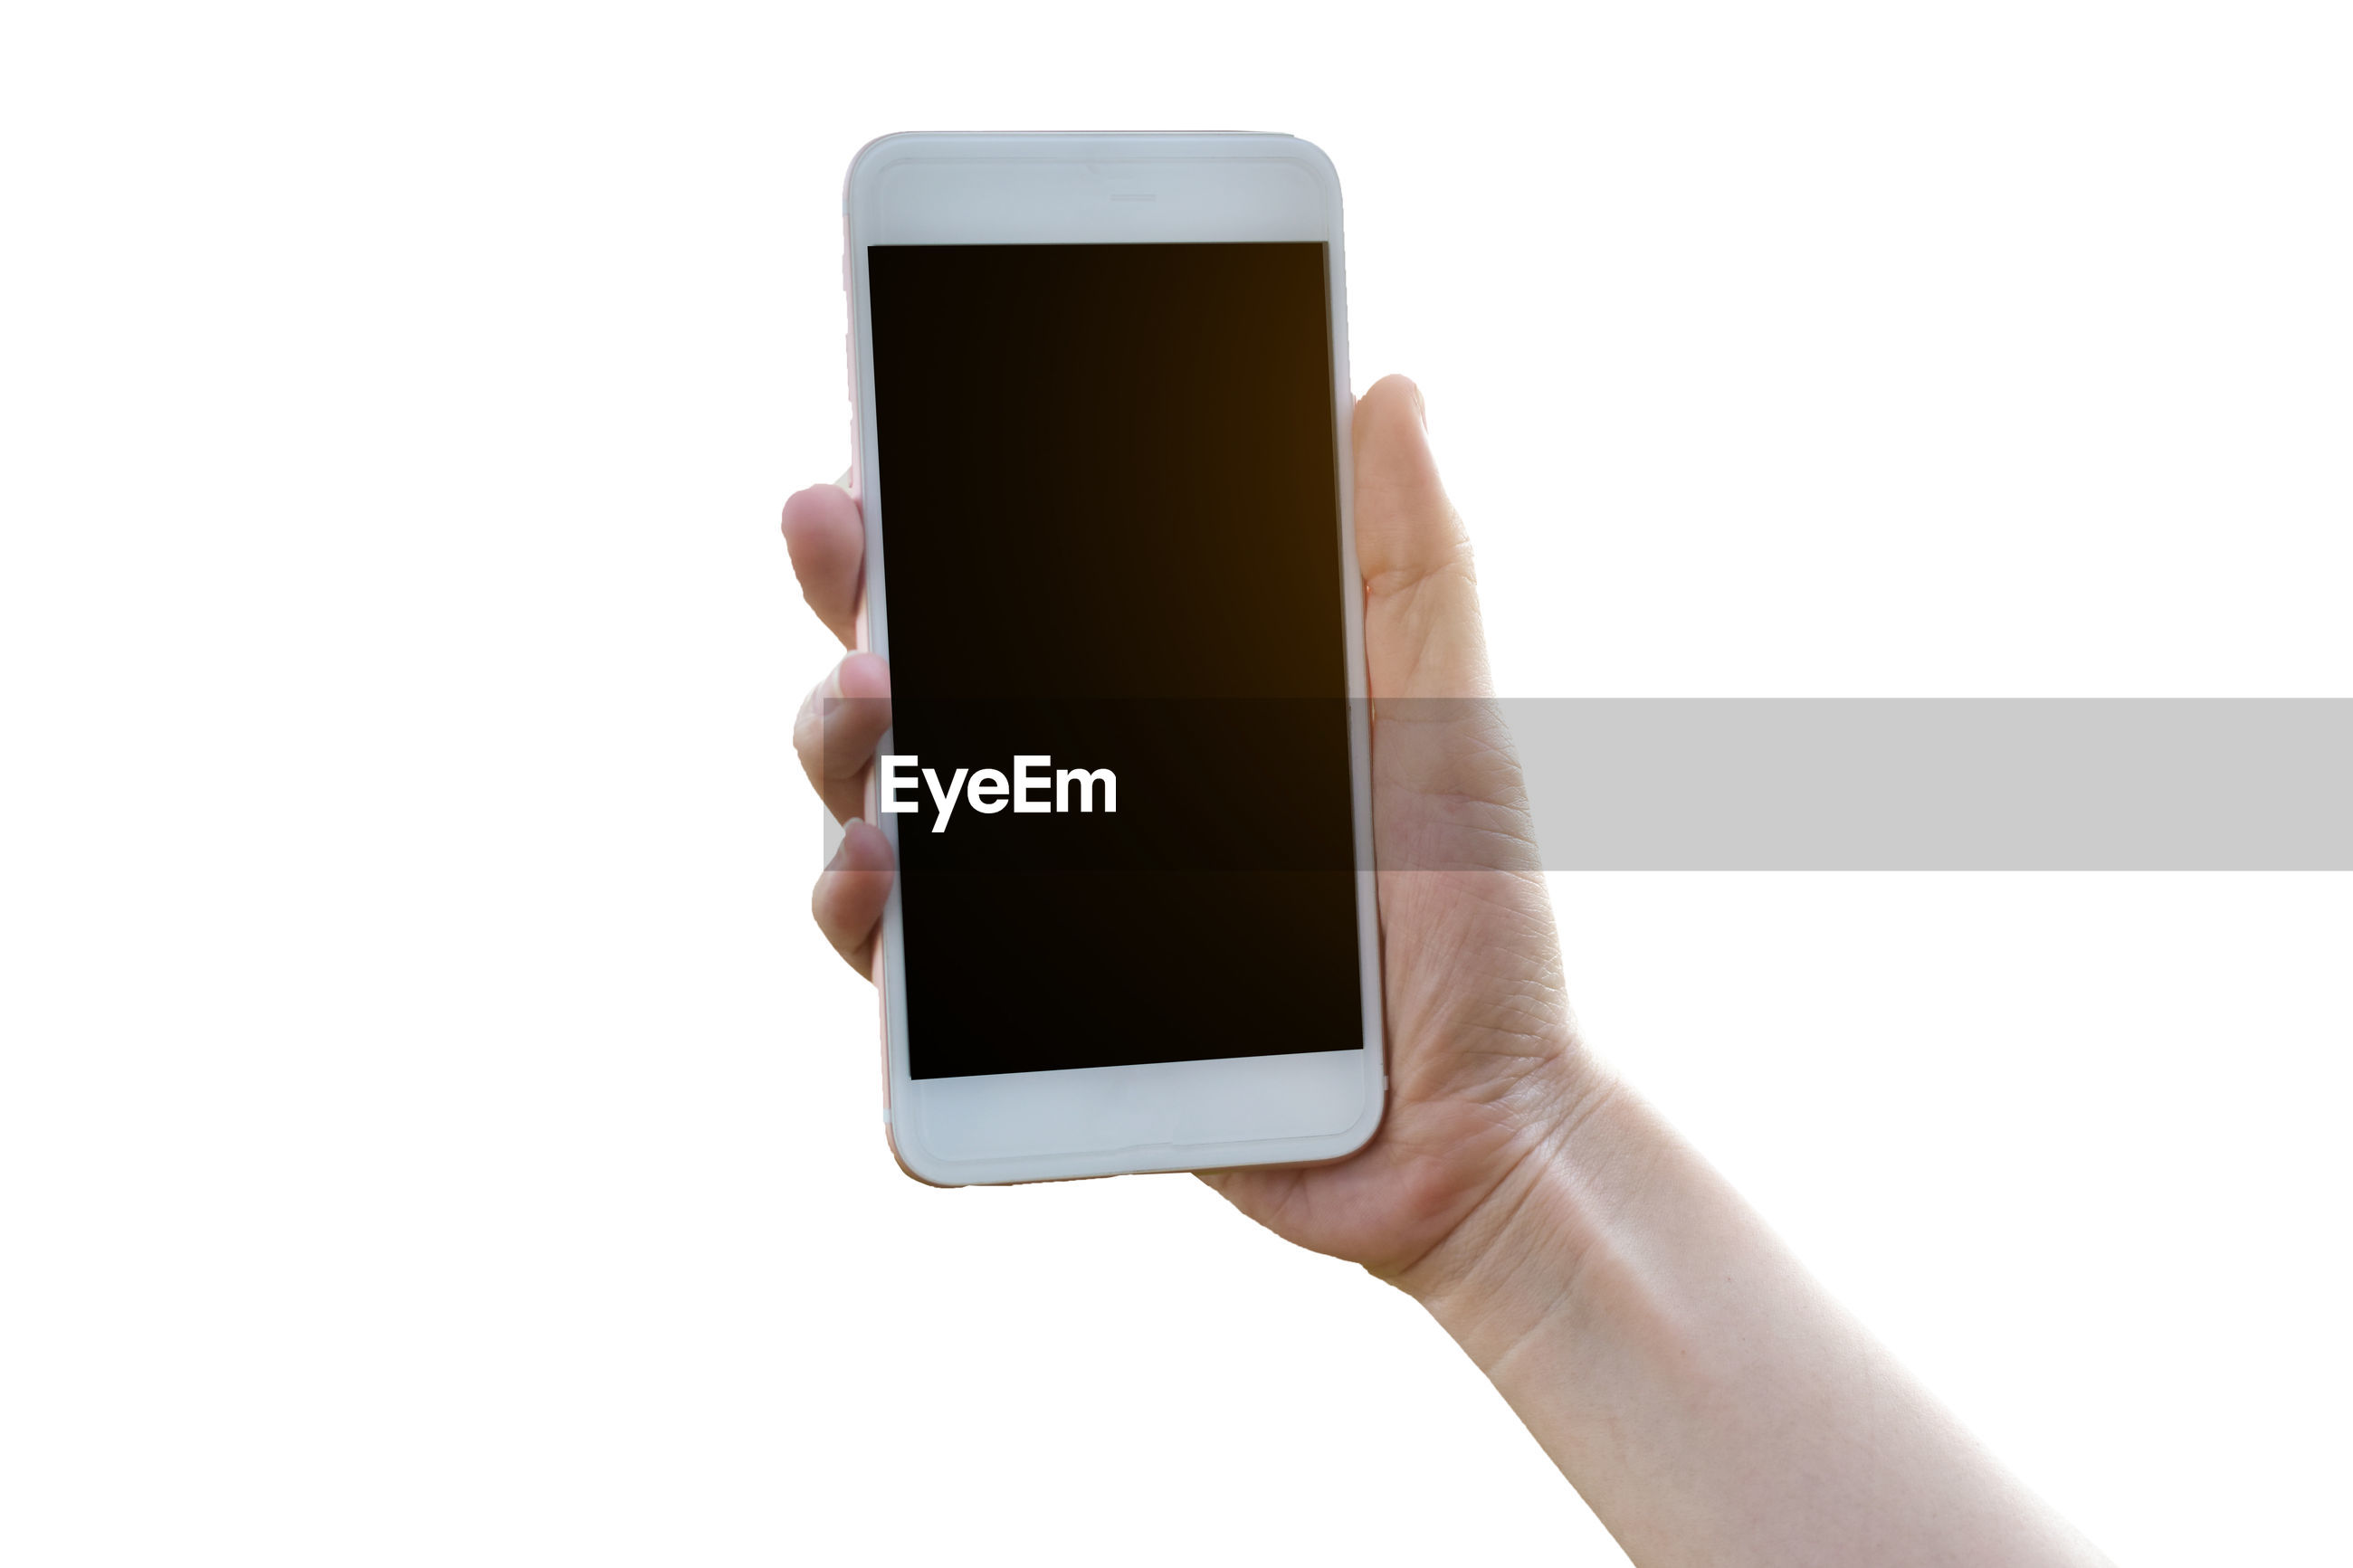 Close-up of hand holding mobile phone over white background